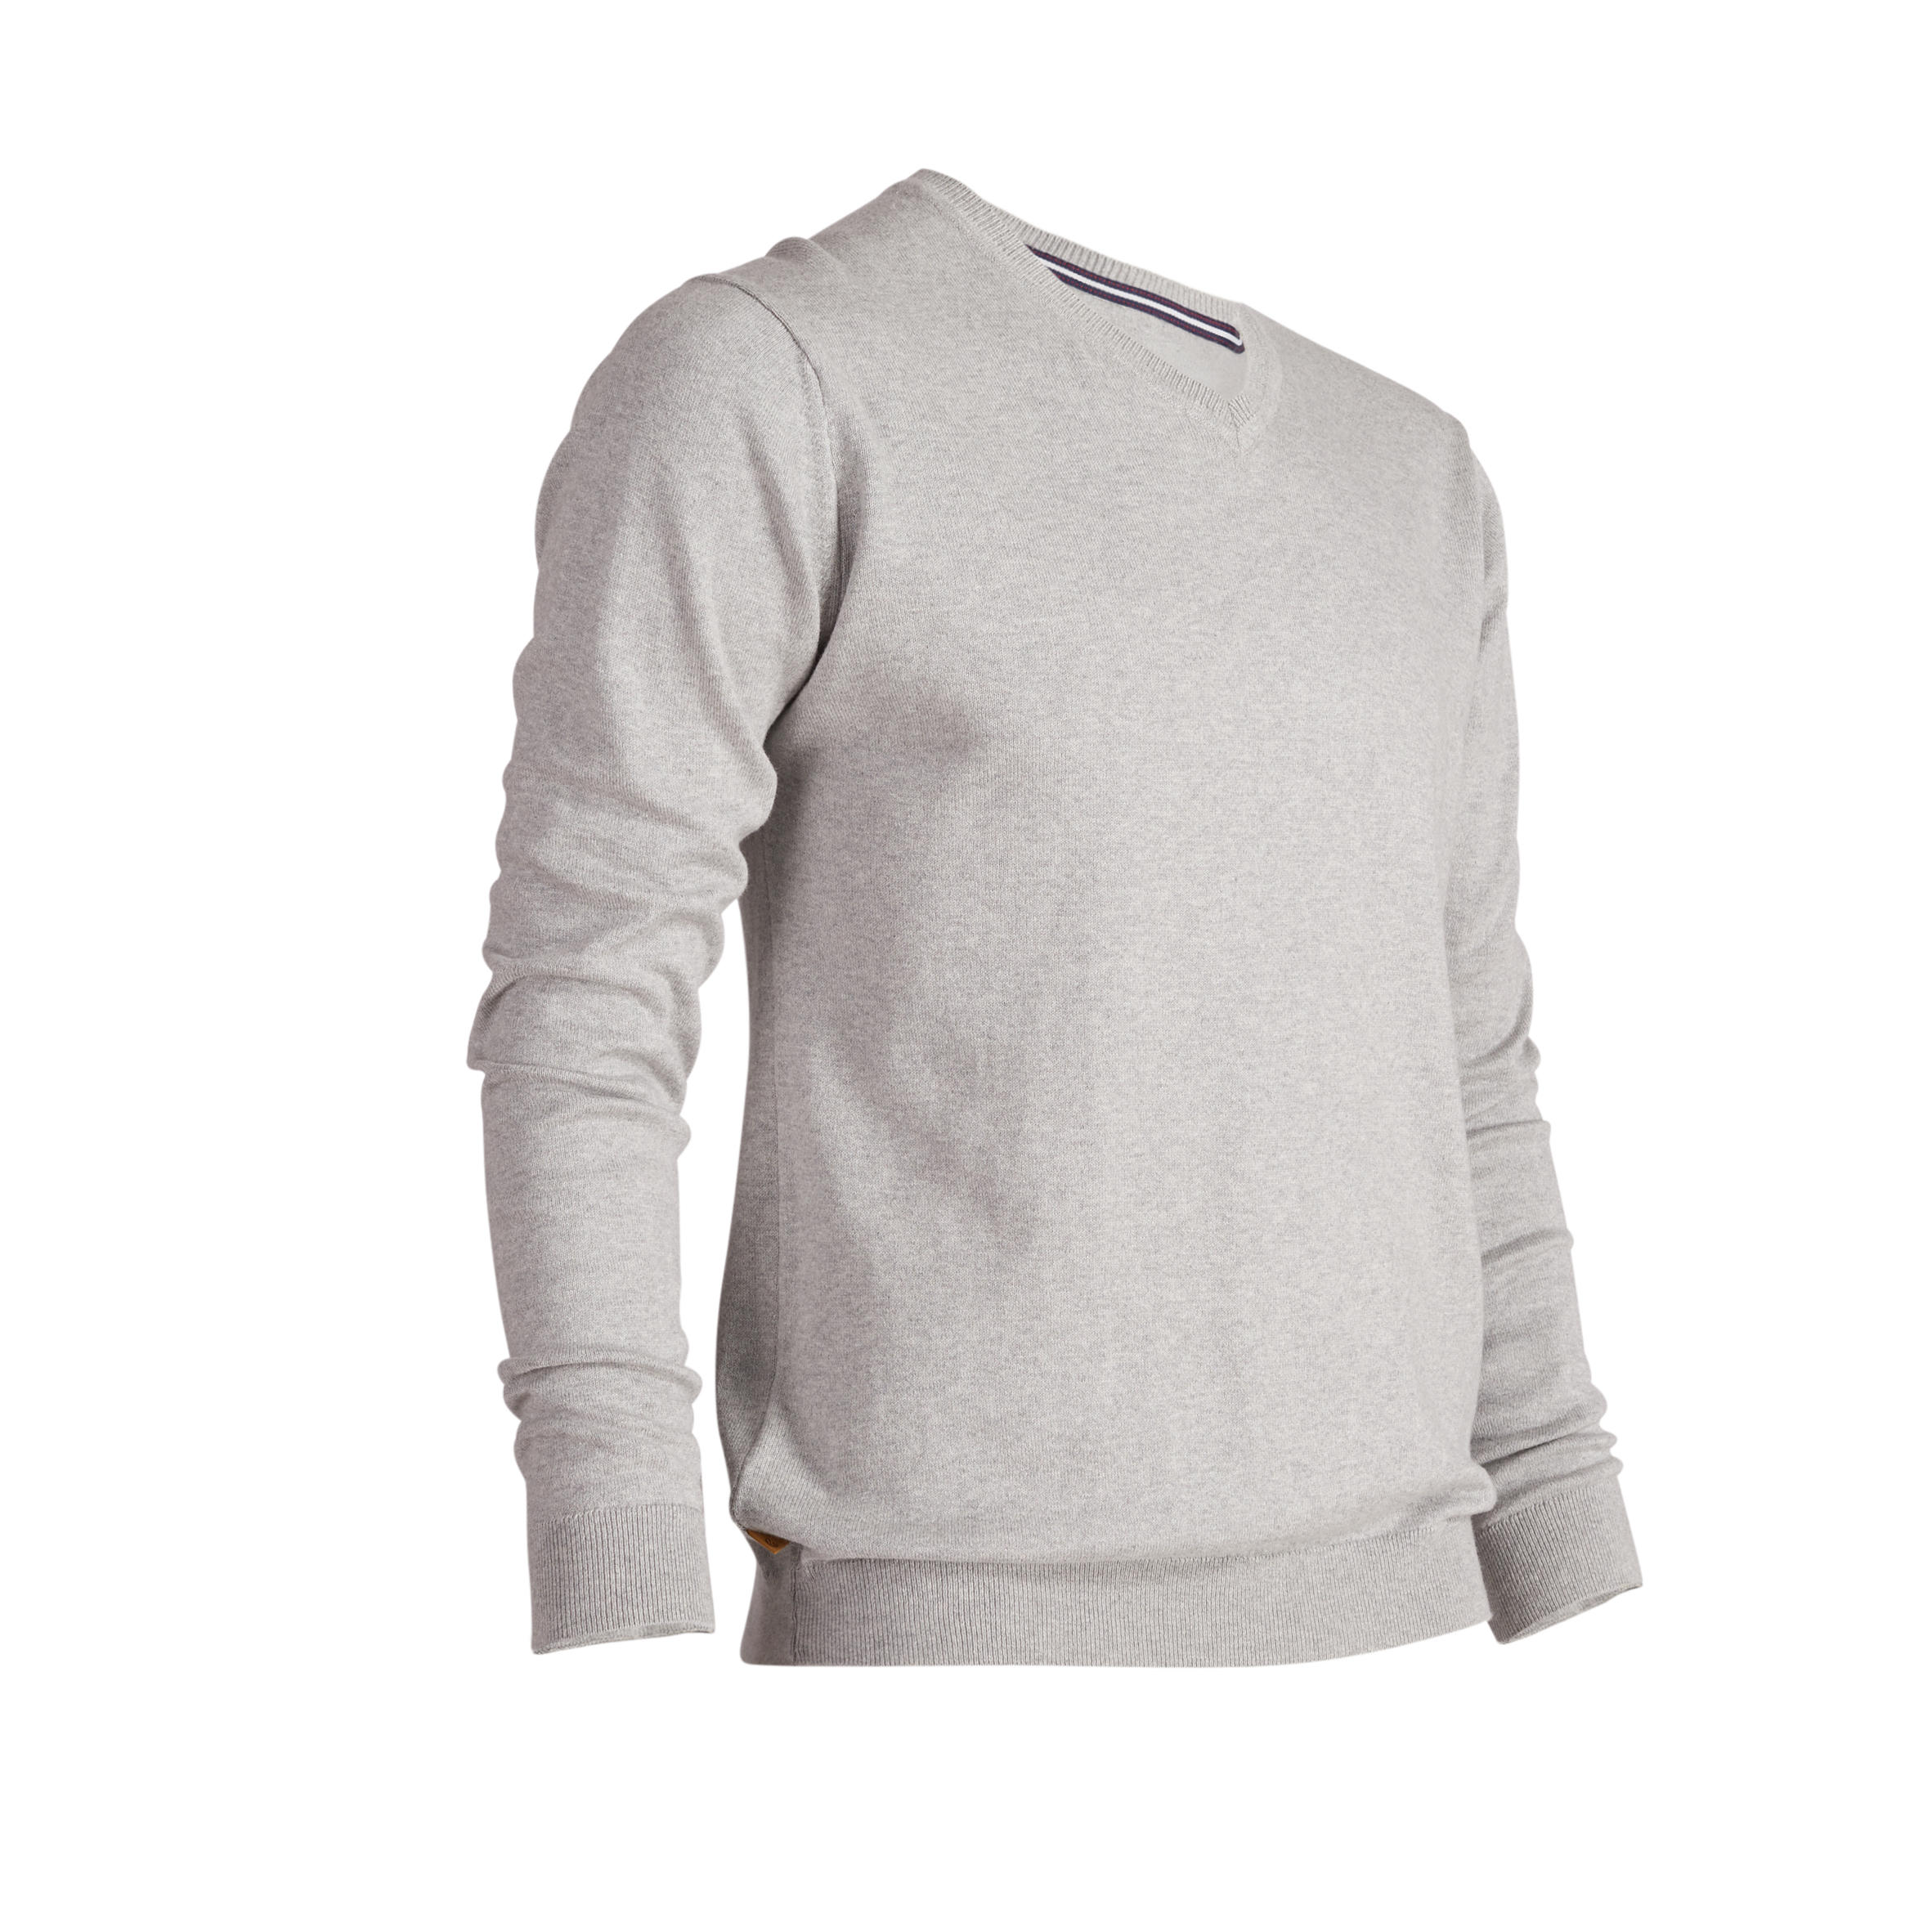 Men's Golf Sweater 500 - Heather Grey